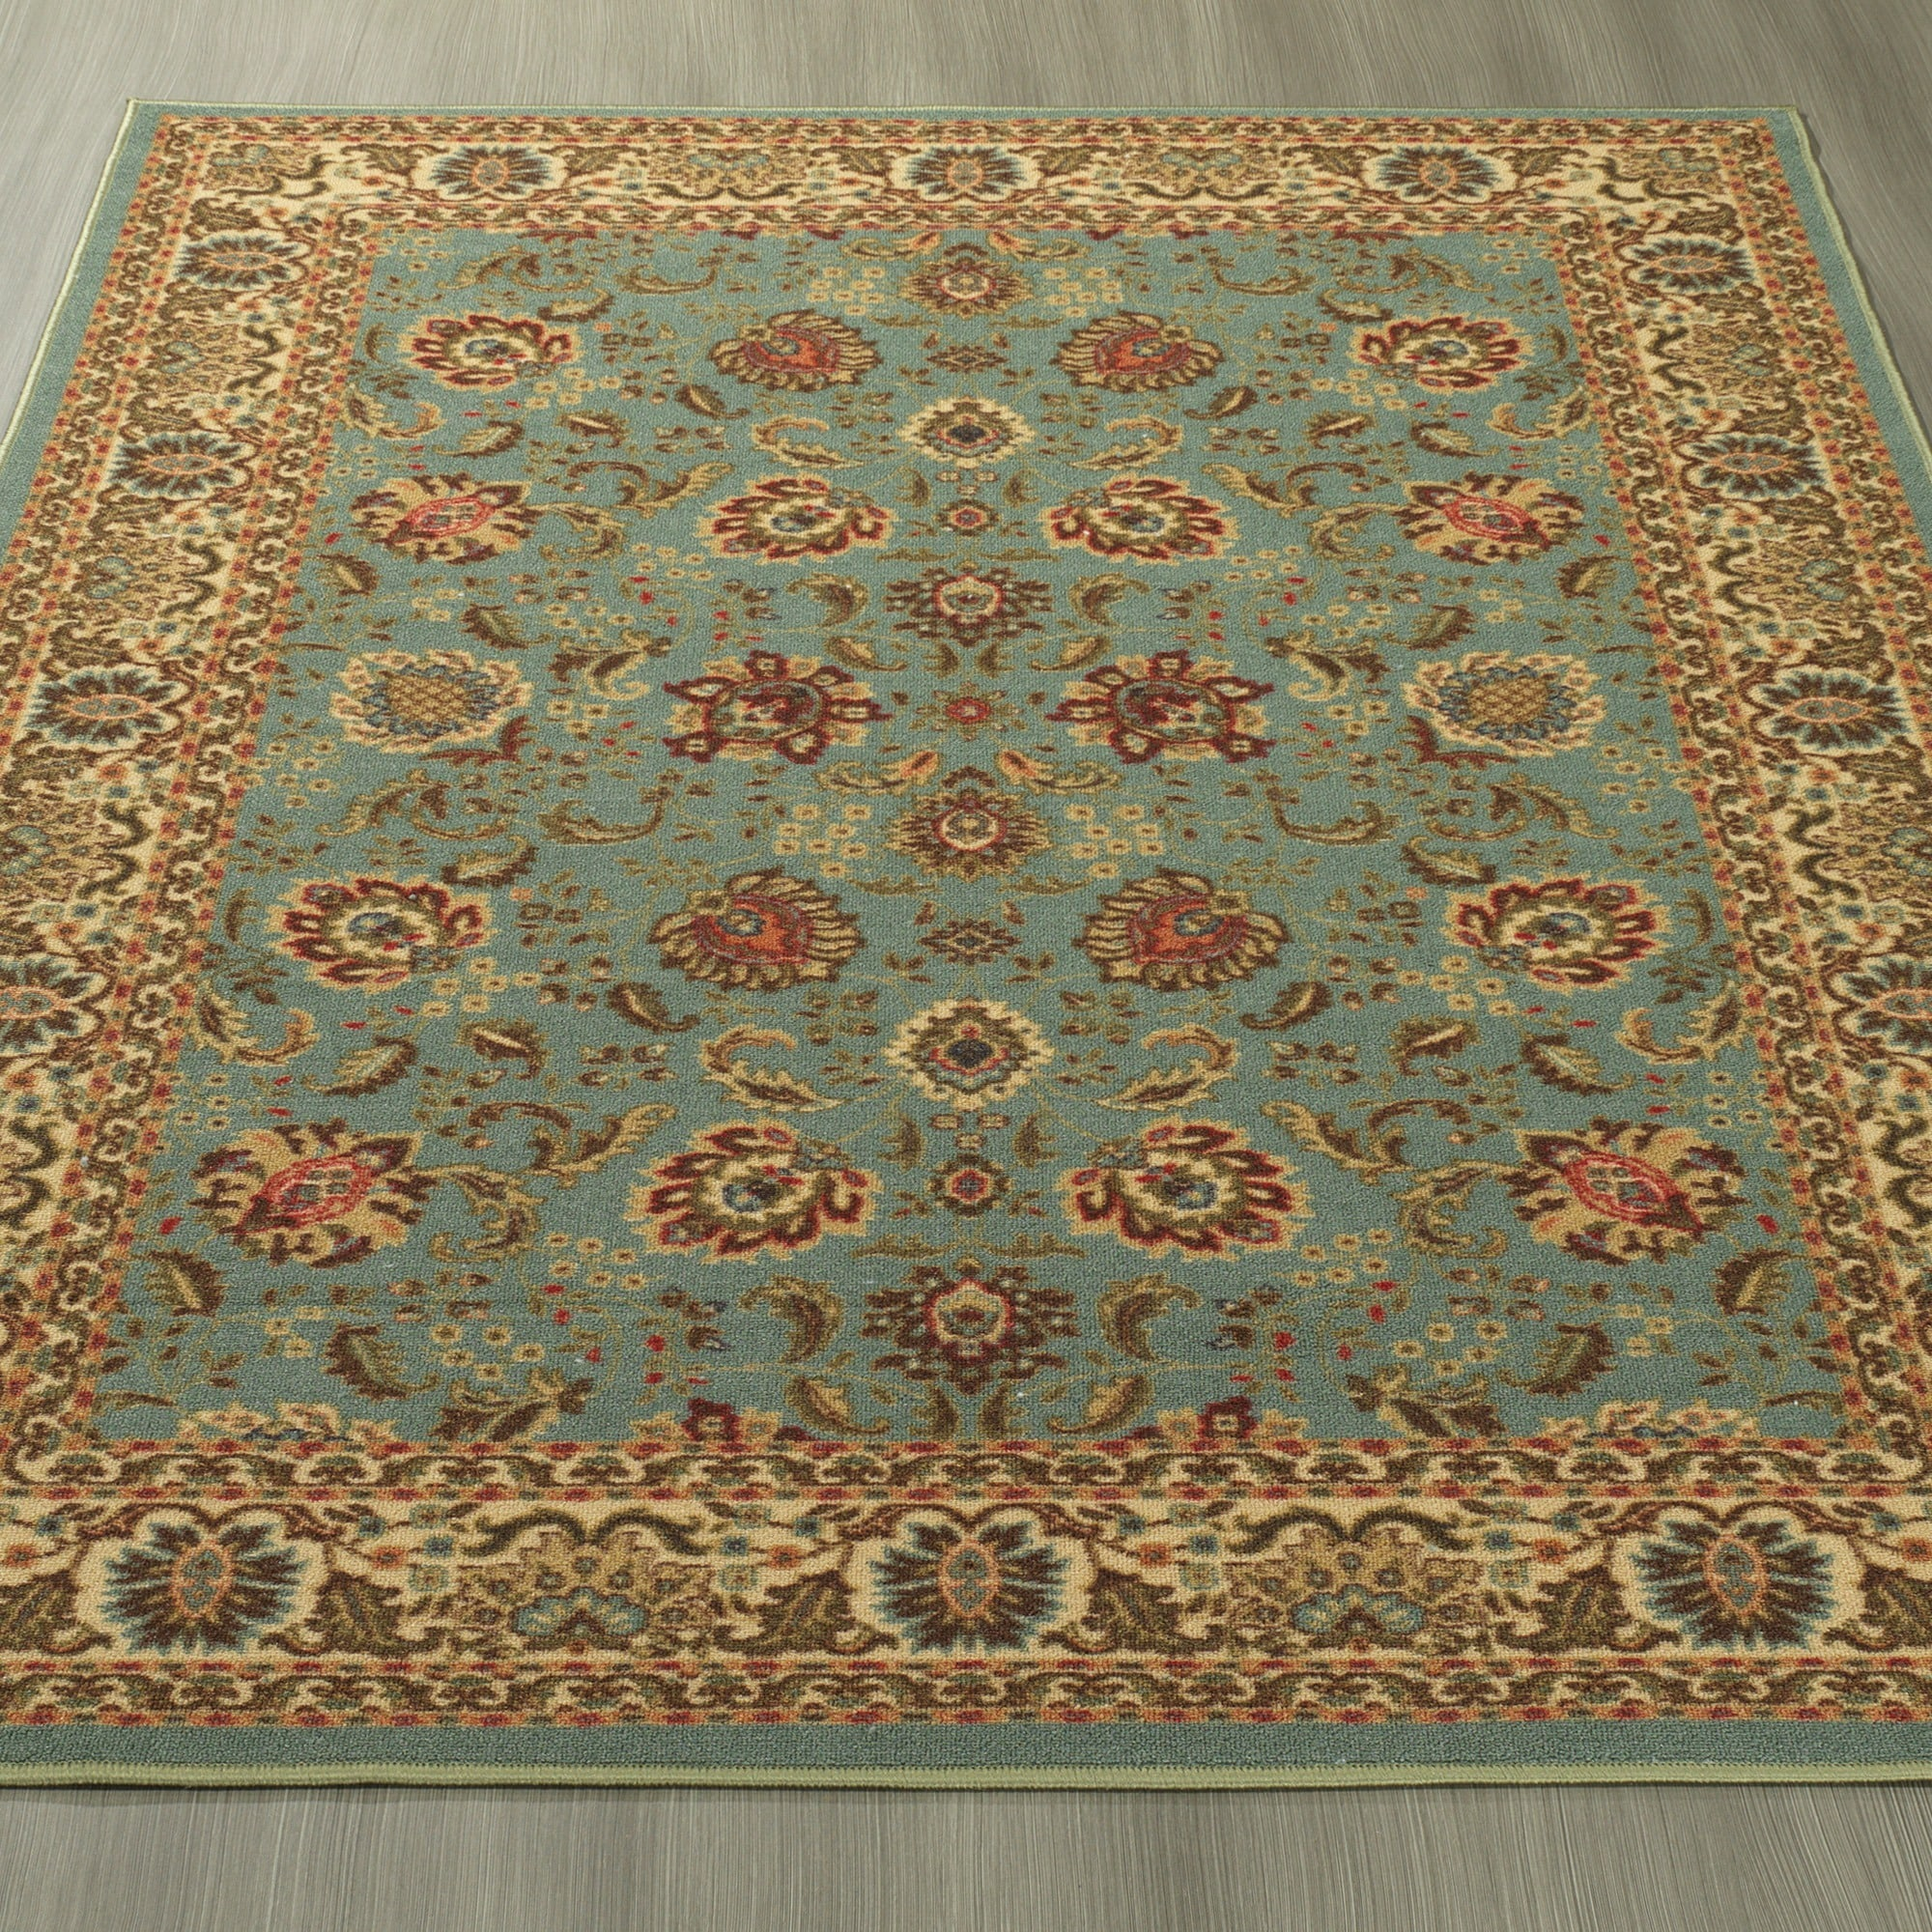 Ottomanson Ottohome Collection Persian Style Sage Green Aqua Blue Area Rug With Non Skid Rubber Backing 3 X 5 Free Shipping On Orders